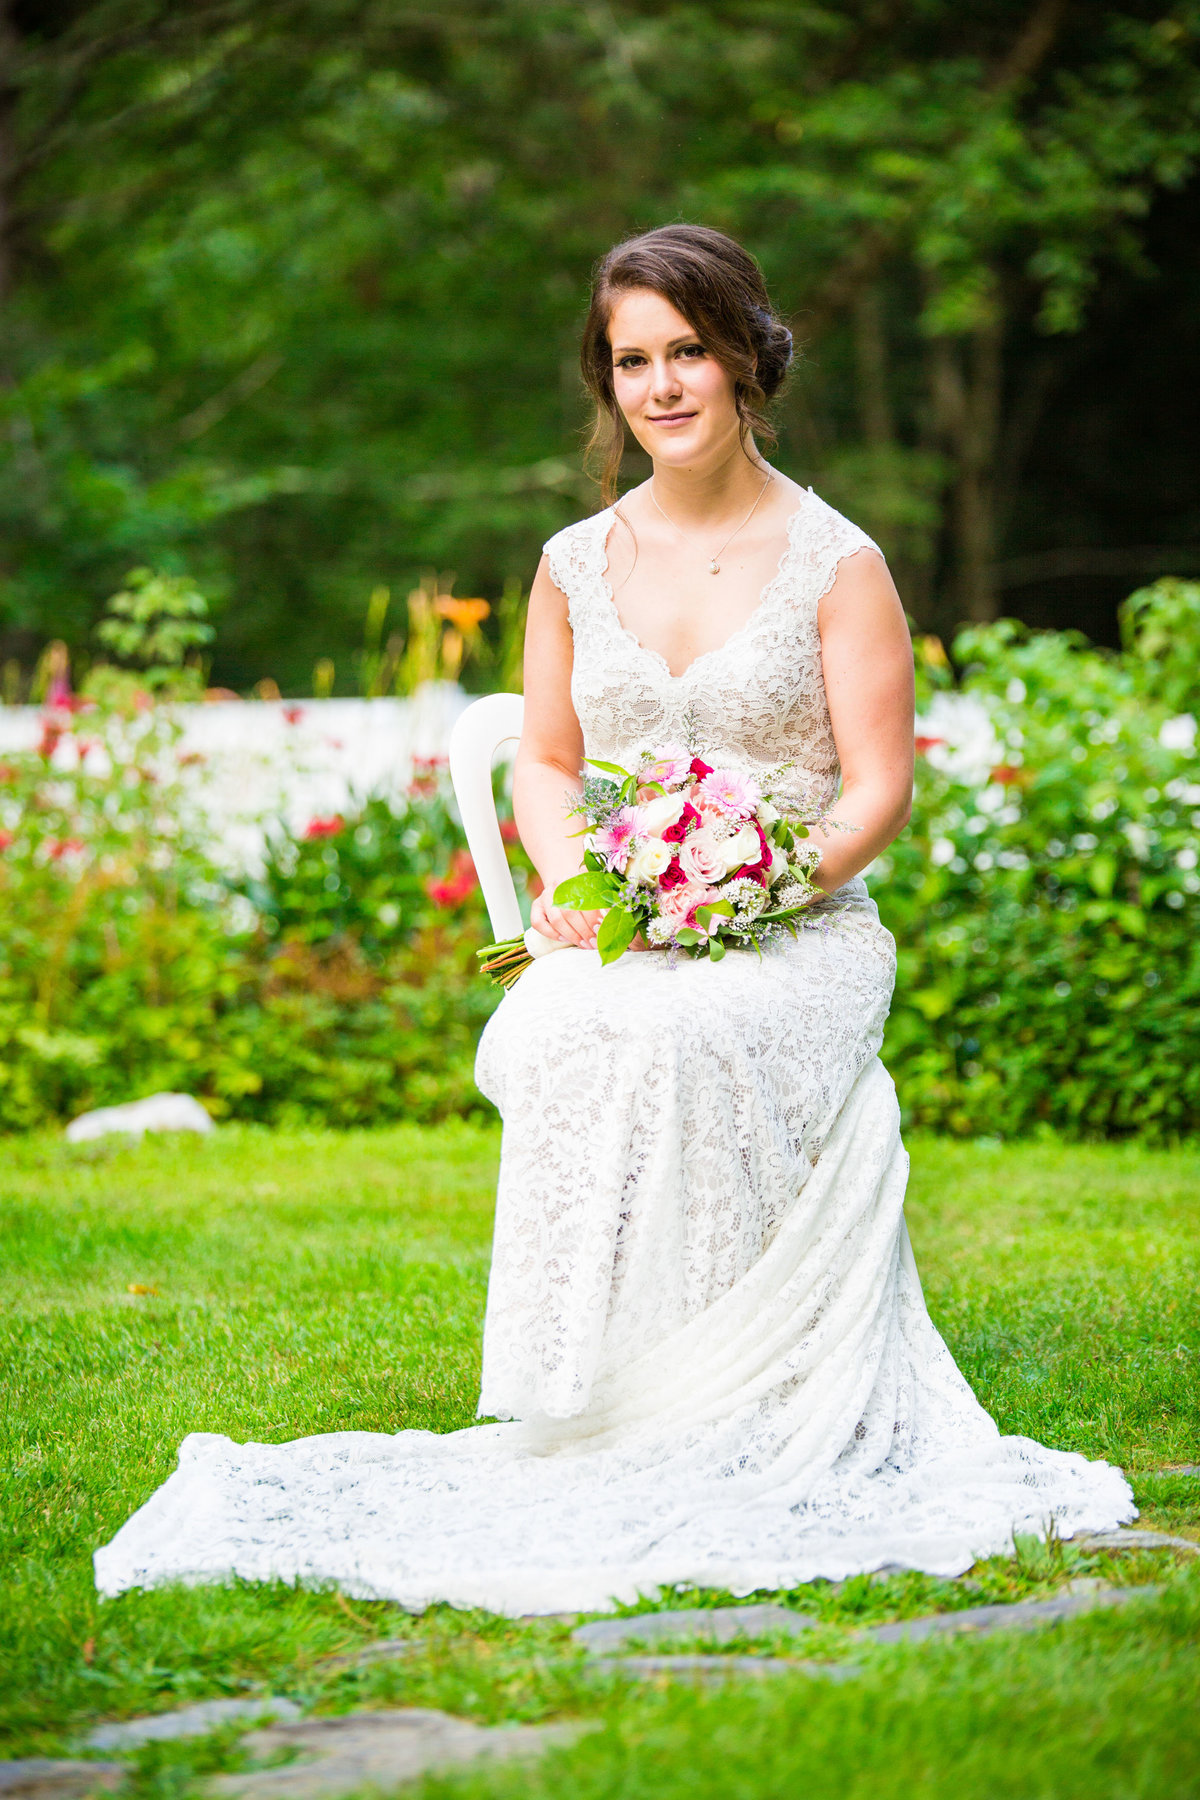 Hall-Potvin Photography Vermont Wedding Photographer Formals-22